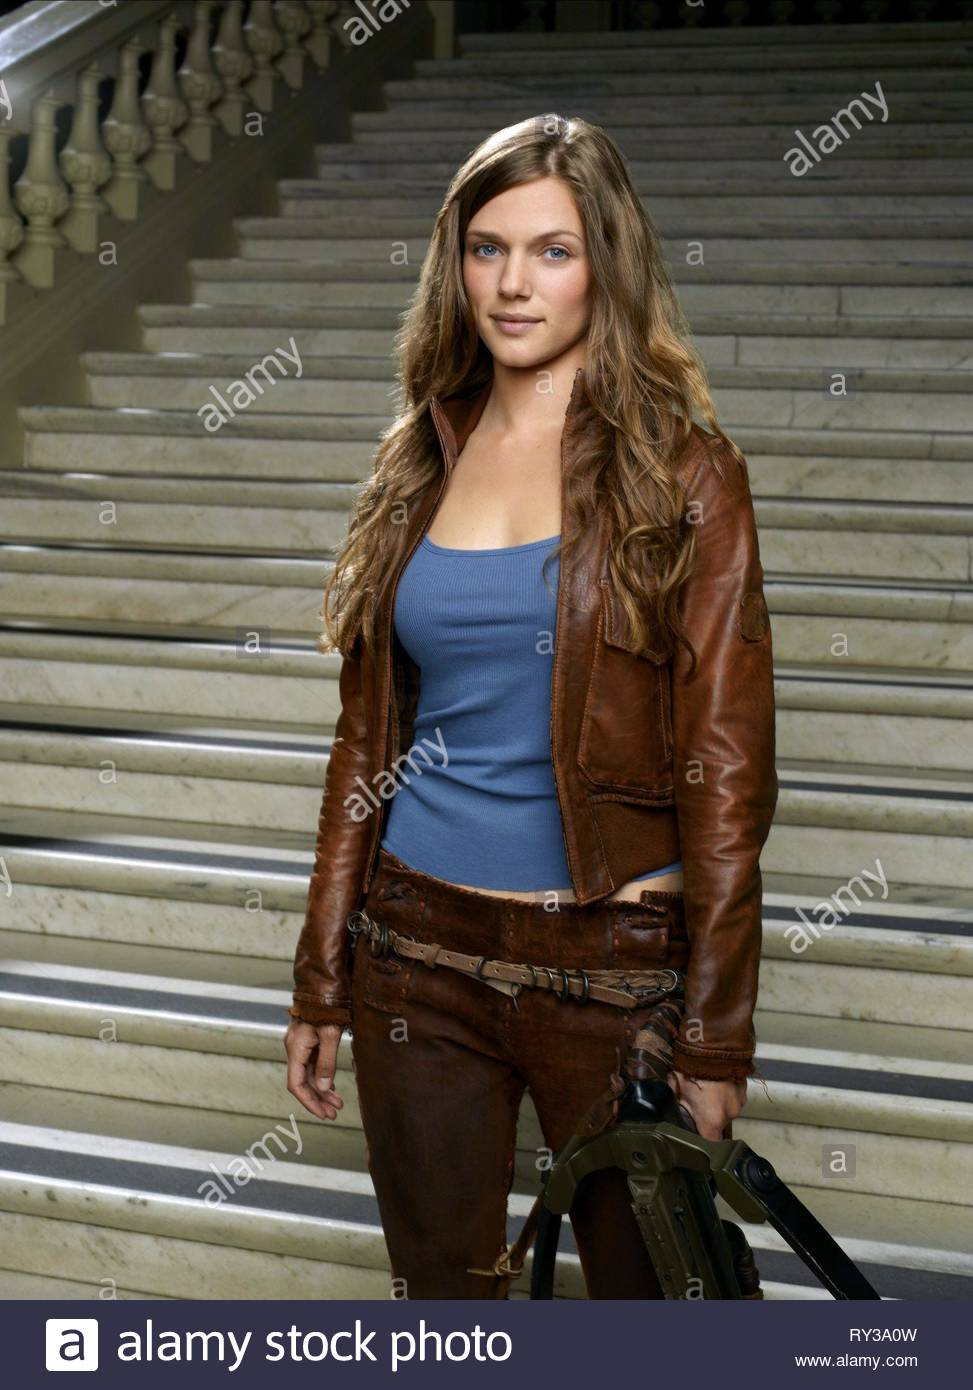 TRACY SPIRIDAKOS, REVOLUTION, 2012 - Stock Image